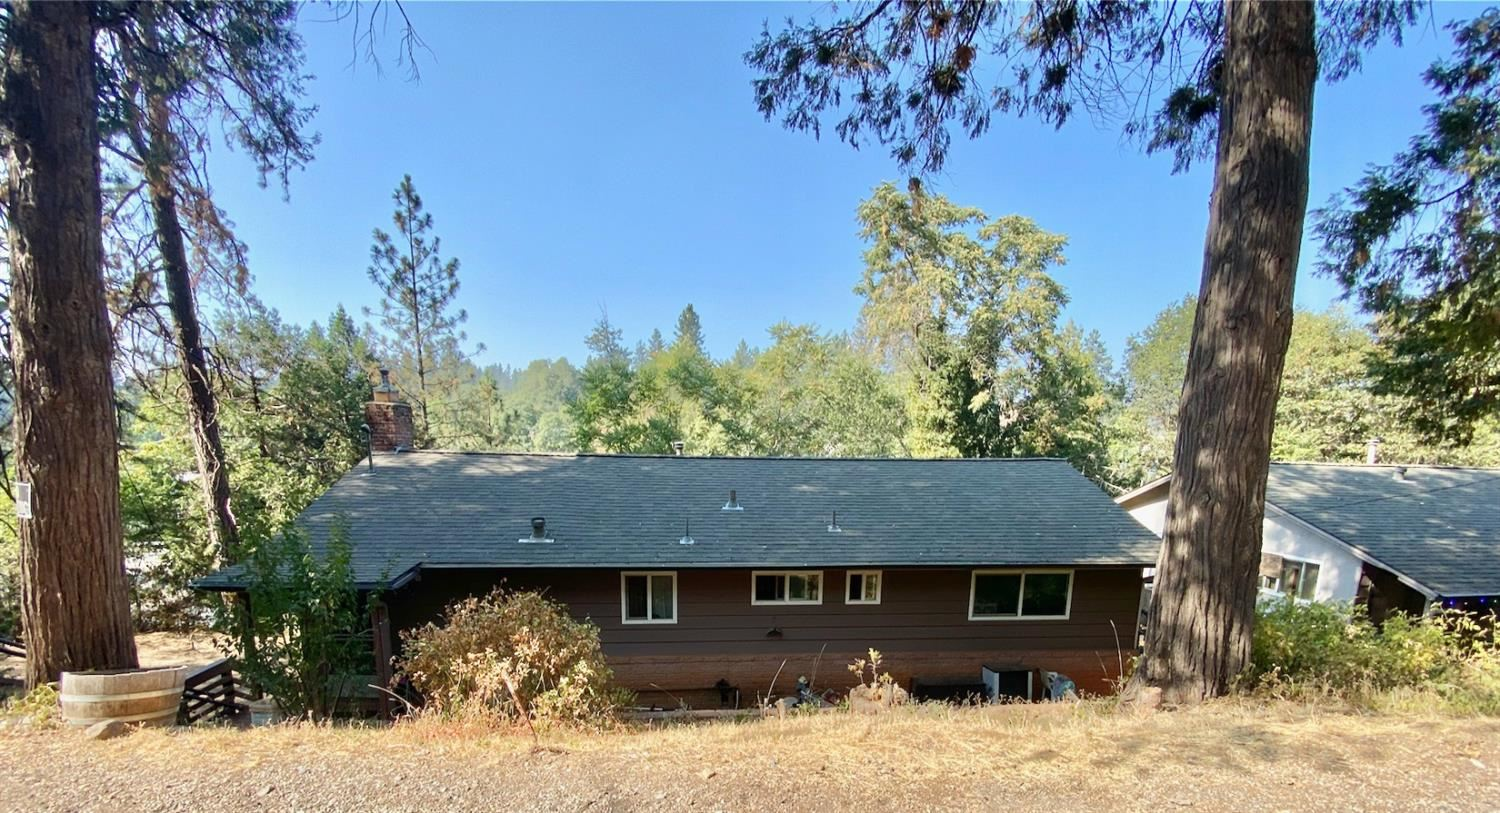 422 Maryland Drive, Grass Valley, CA 95945 - MLS#: 221120838